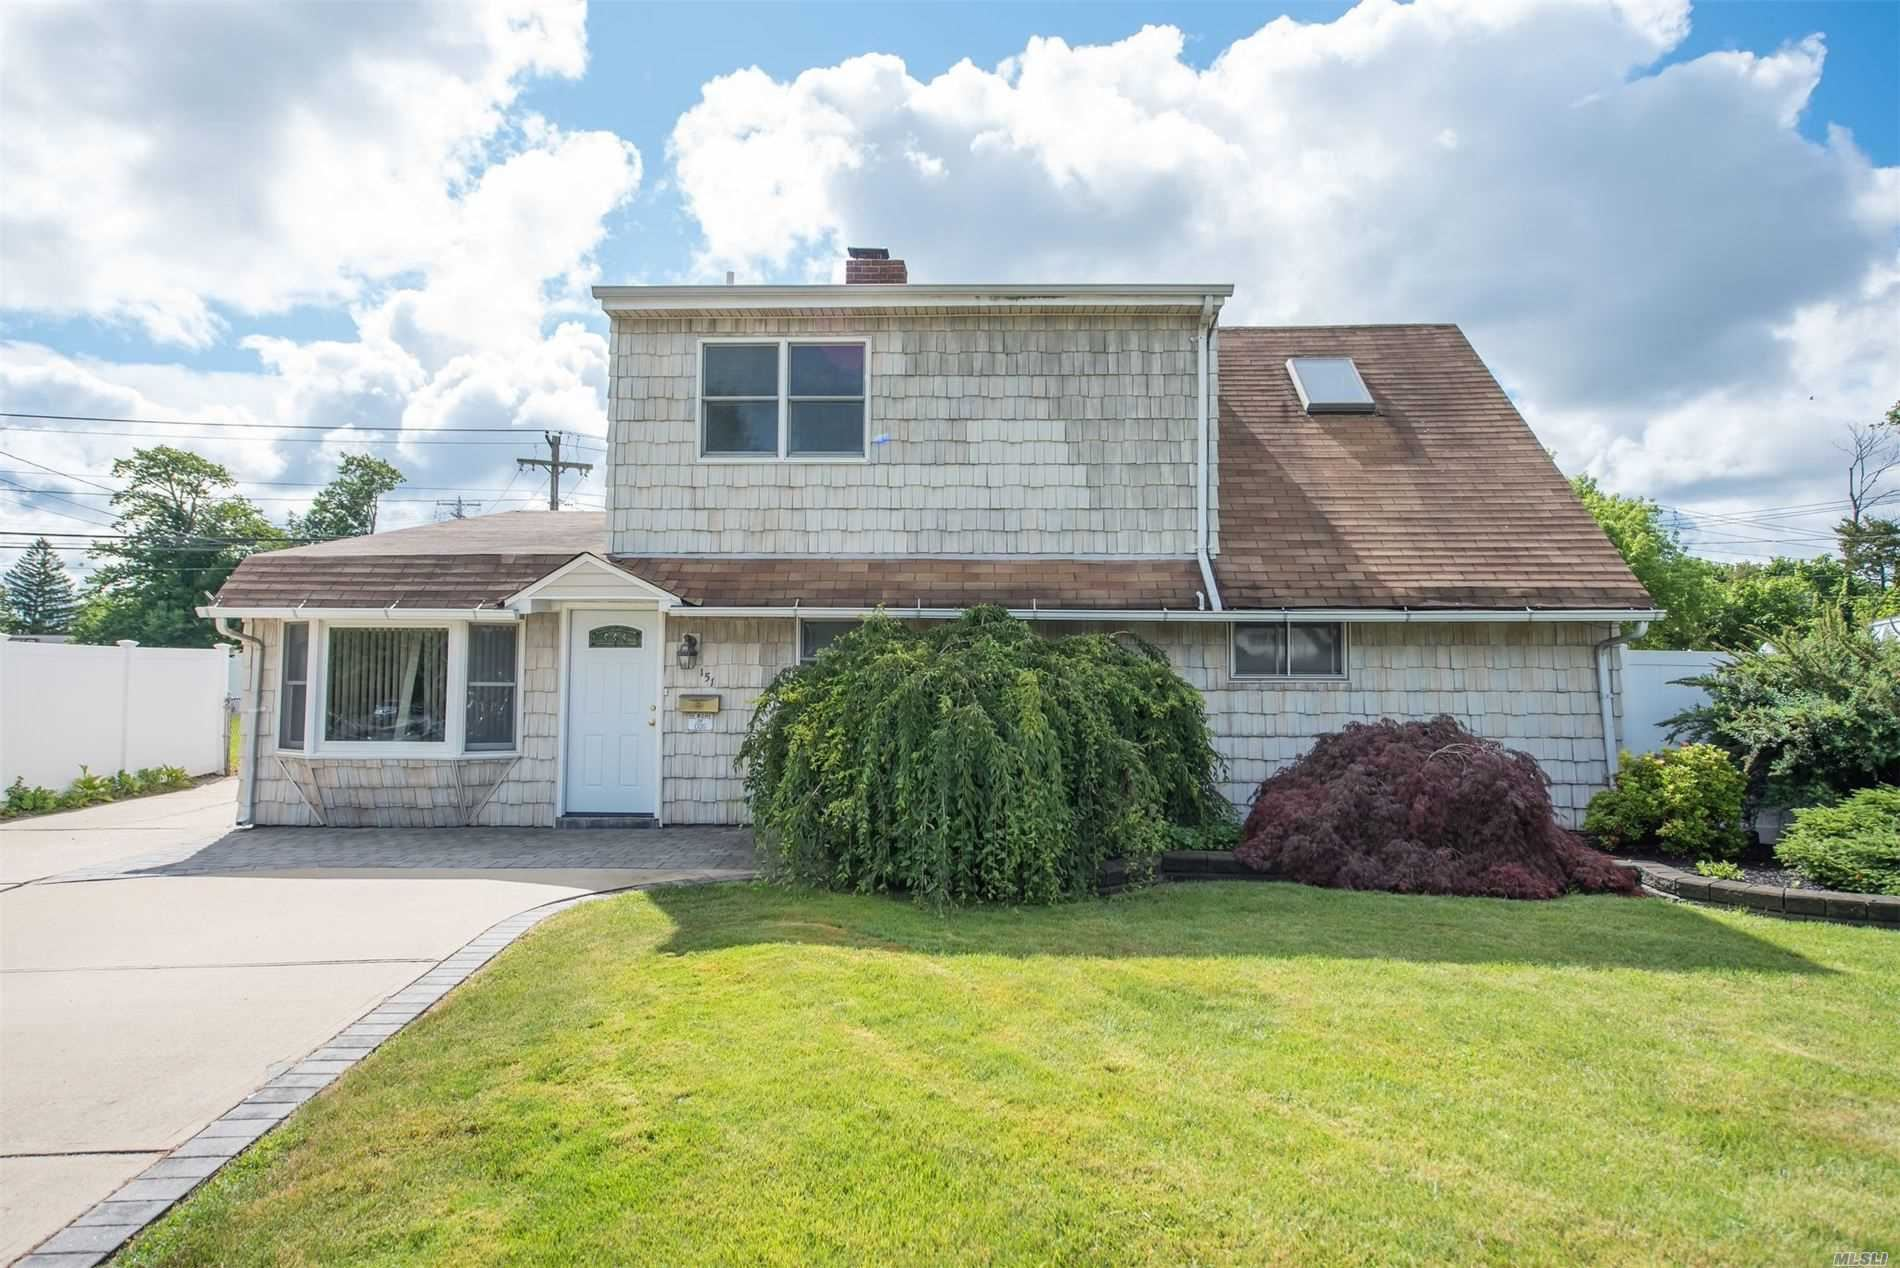 151 Brittle Lane, Hicksville, NY 11801 - MLS#: 3228145